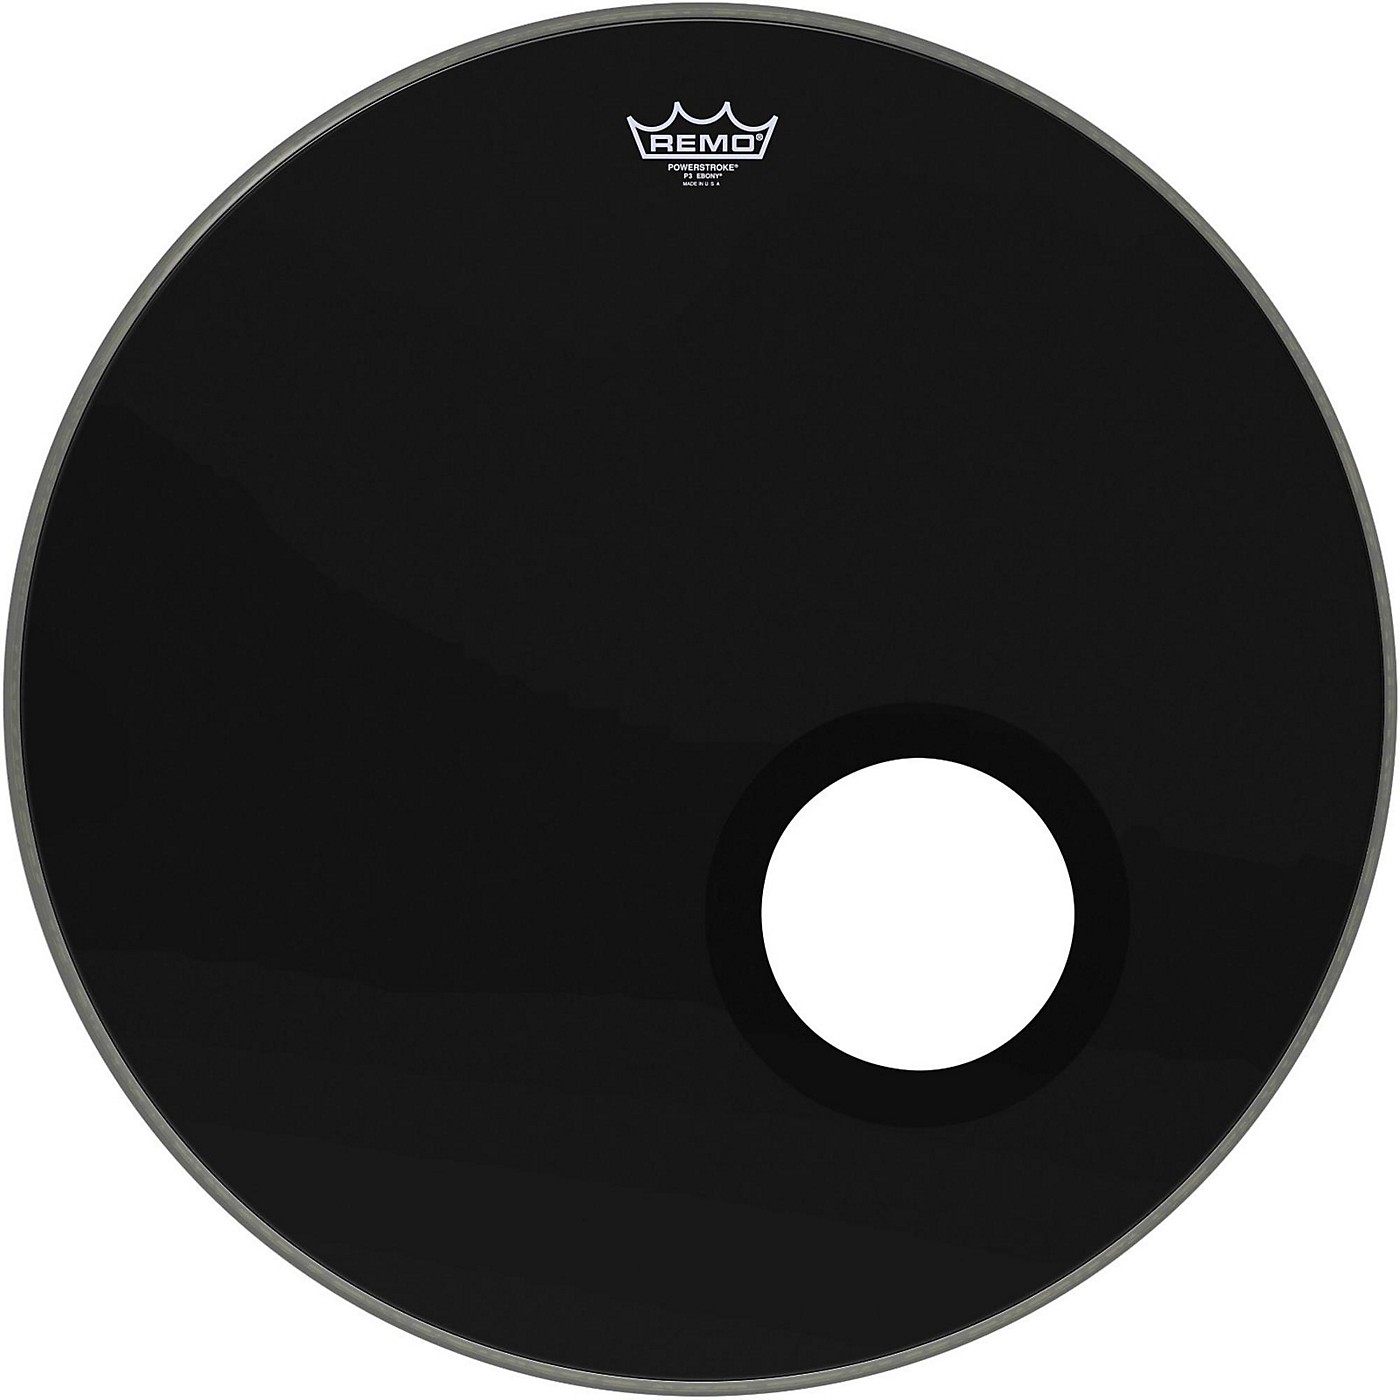 Remo Ebony Powerstroke 3 Resonant Bass Drum Head with 5 Port Hole thumbnail